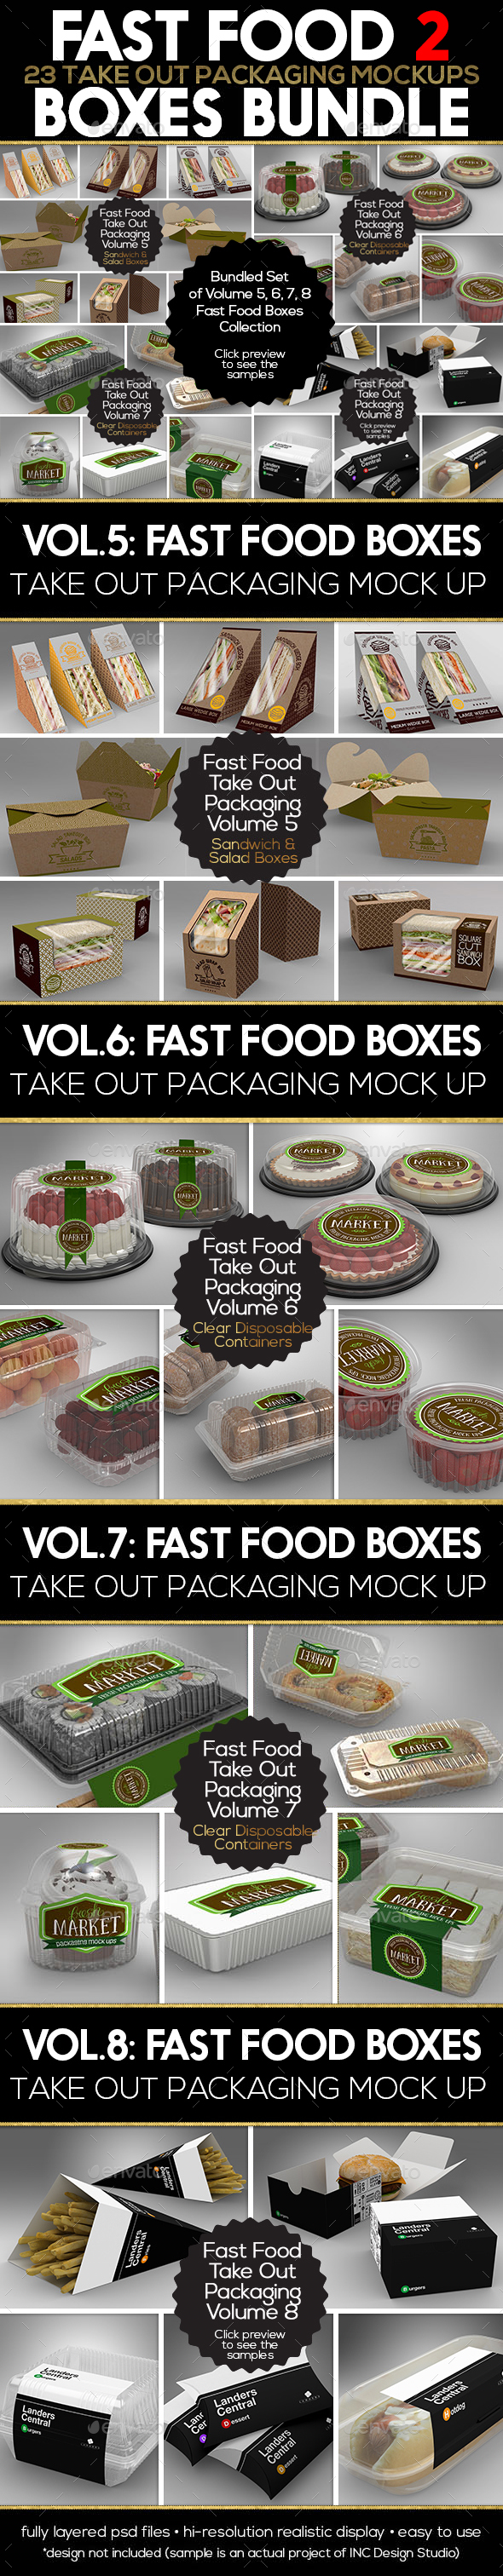 GraphicRiver Fast Food Boxes Mock Up Bundle 2 20288036